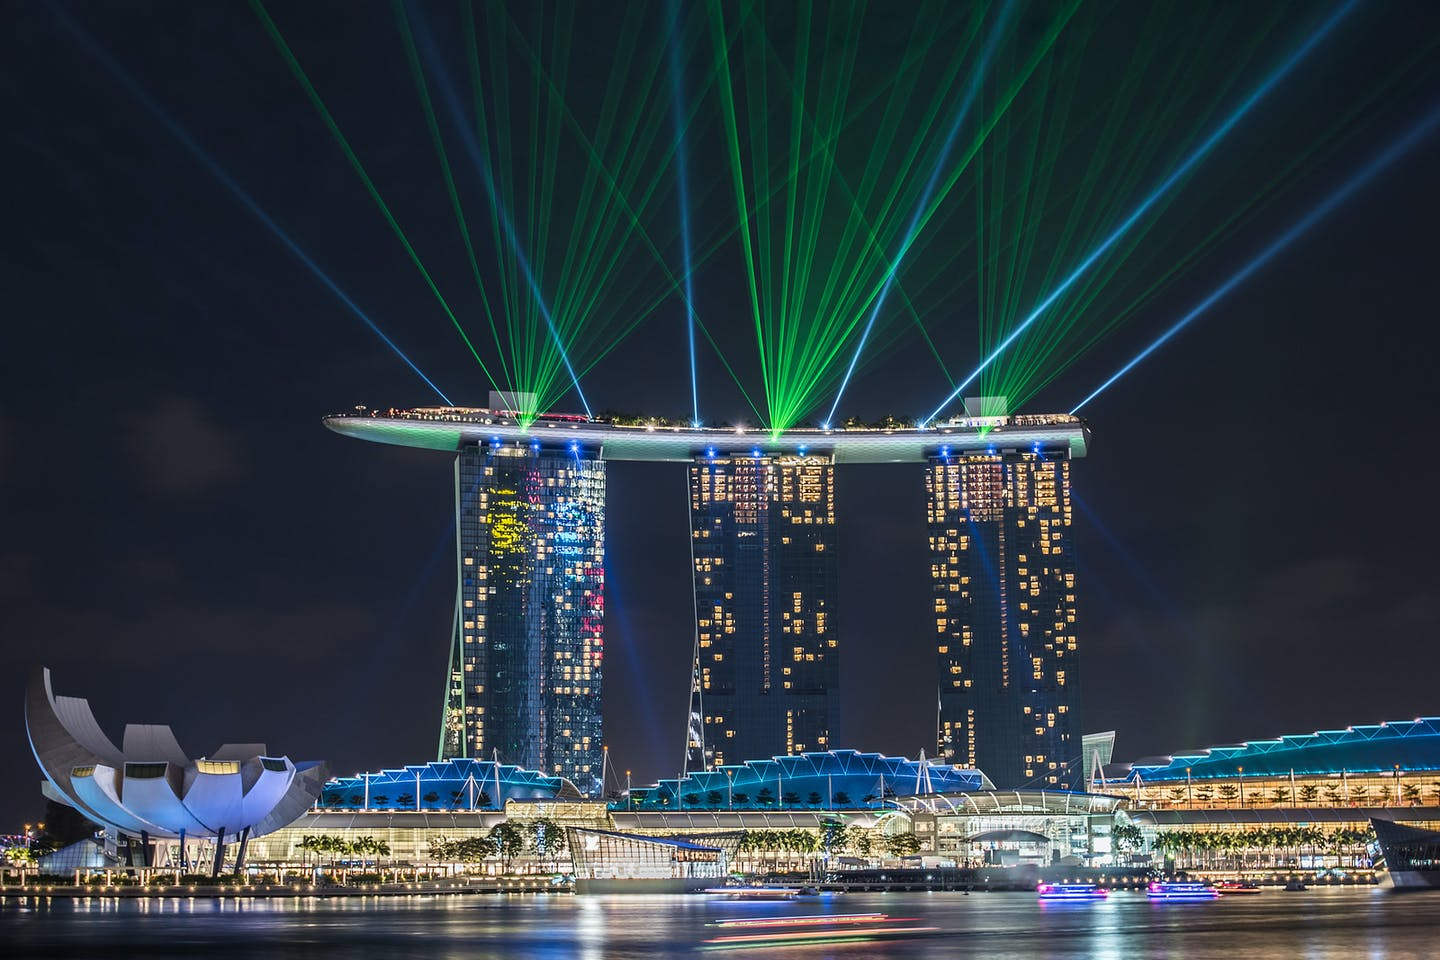 Marina Bay Sands lasershow in Singapore